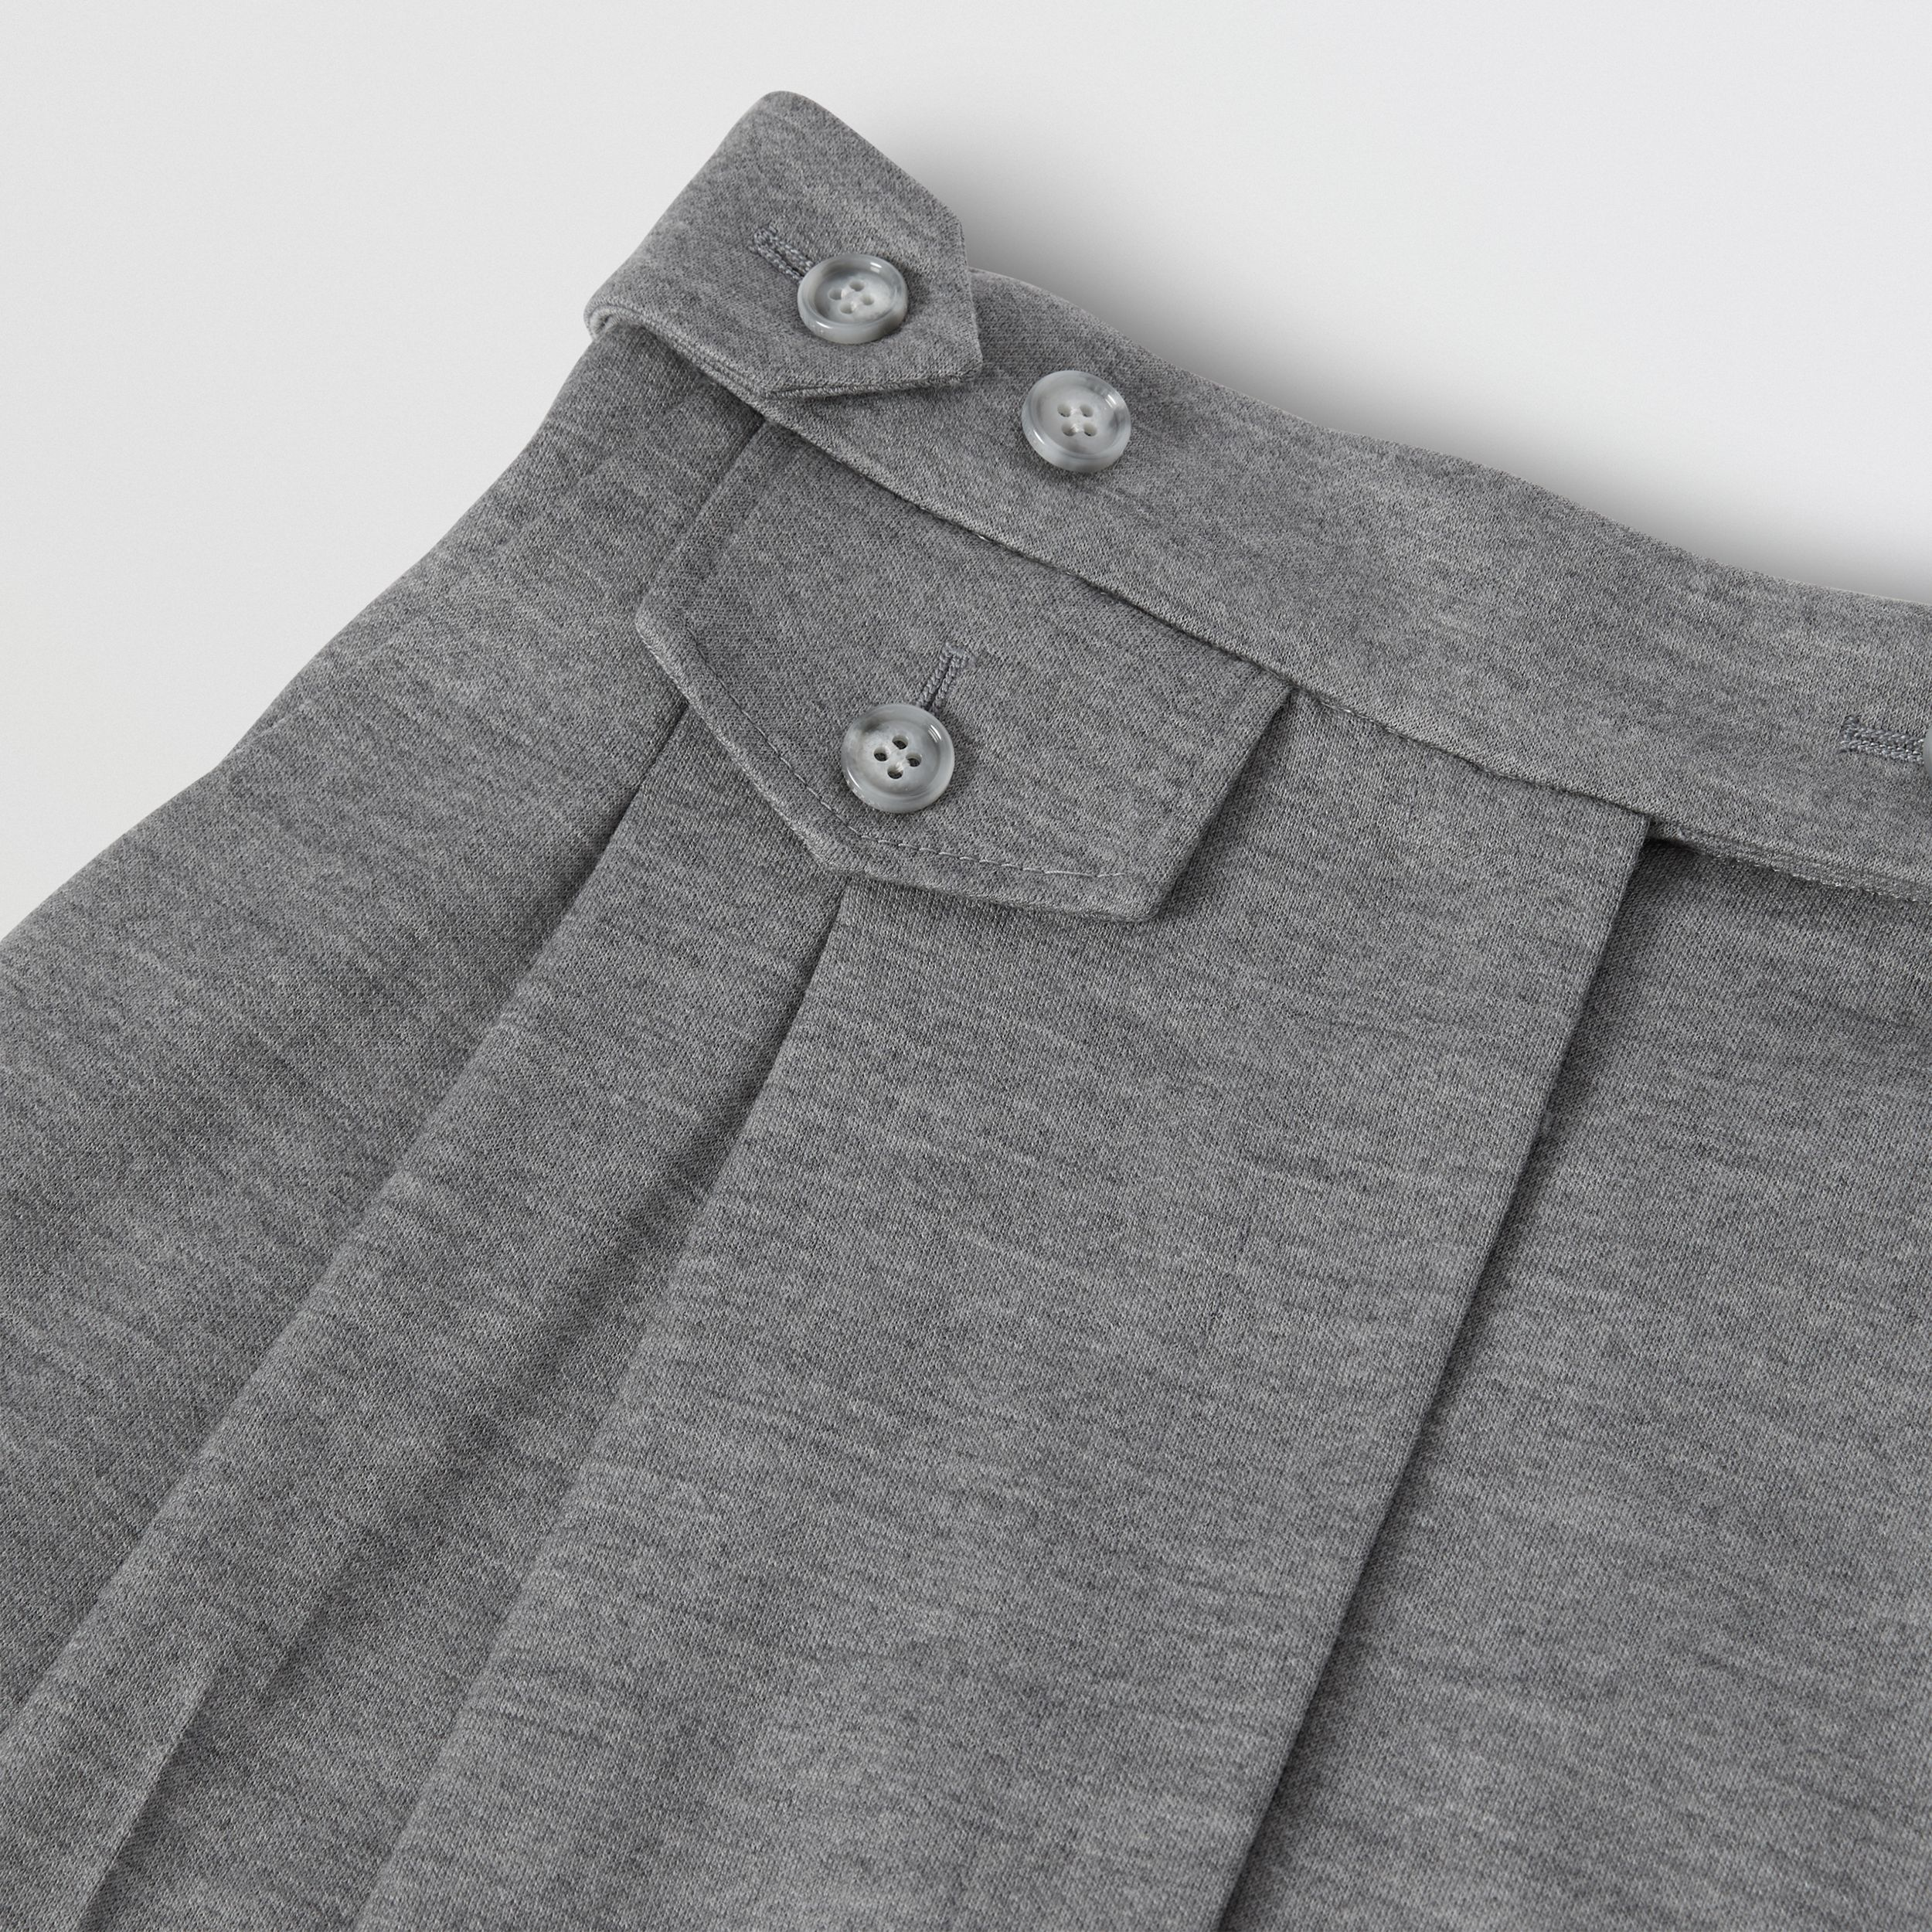 Cut-out Detail Wool Jersey Tailored Trousers in Cloud Grey - Women | Burberry - 4